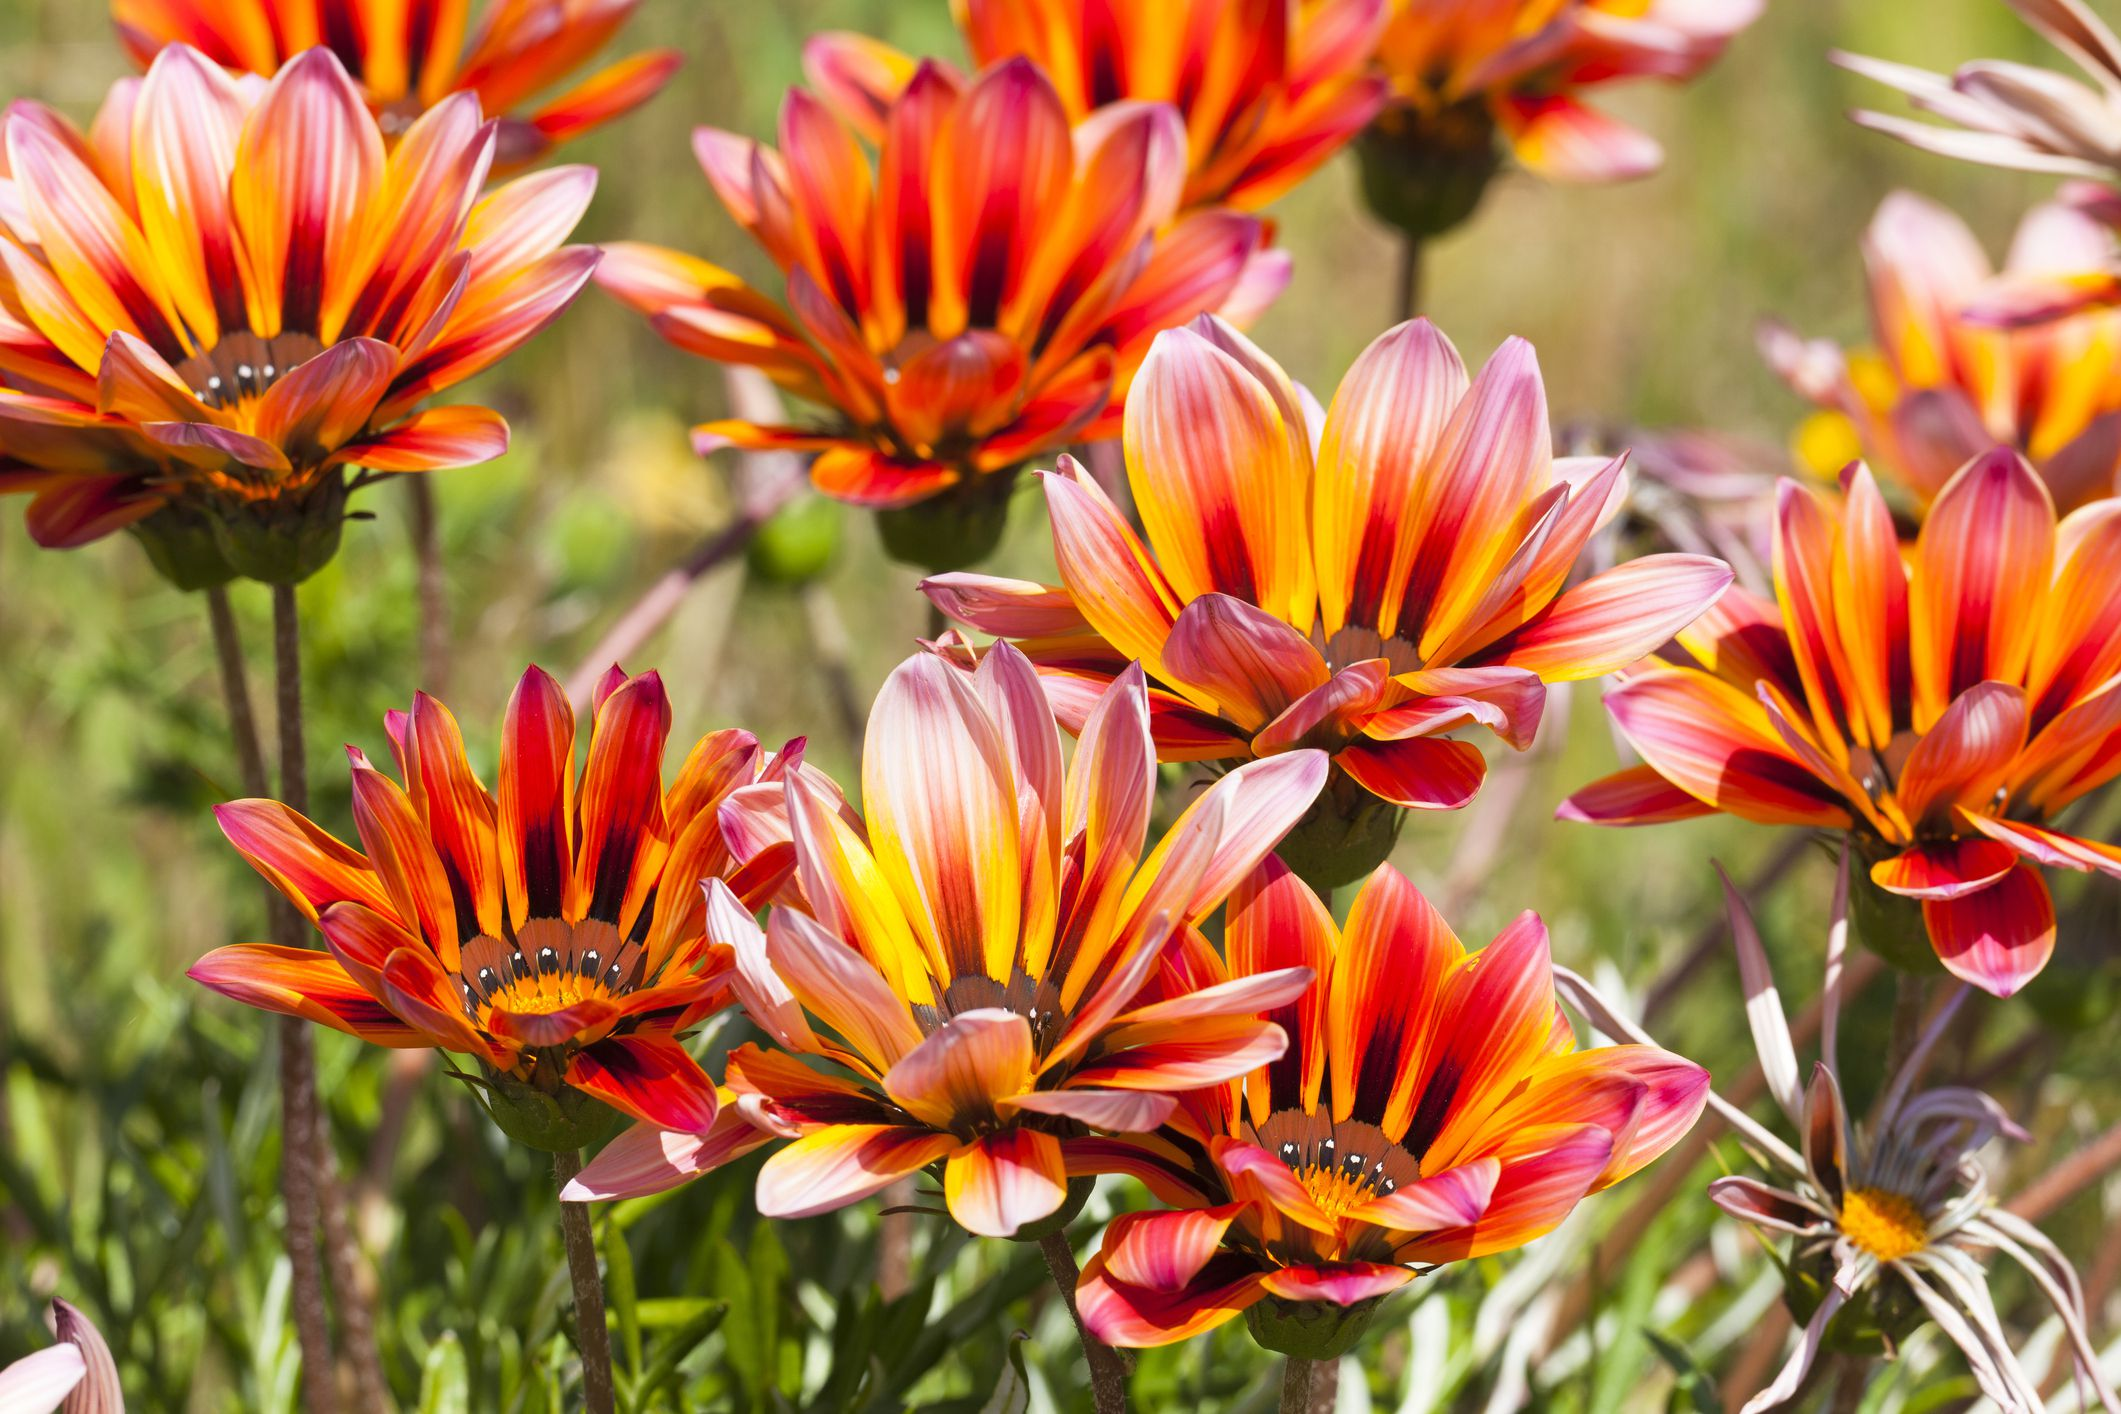 Gazania Flowers Are Low Maintenance Annuals